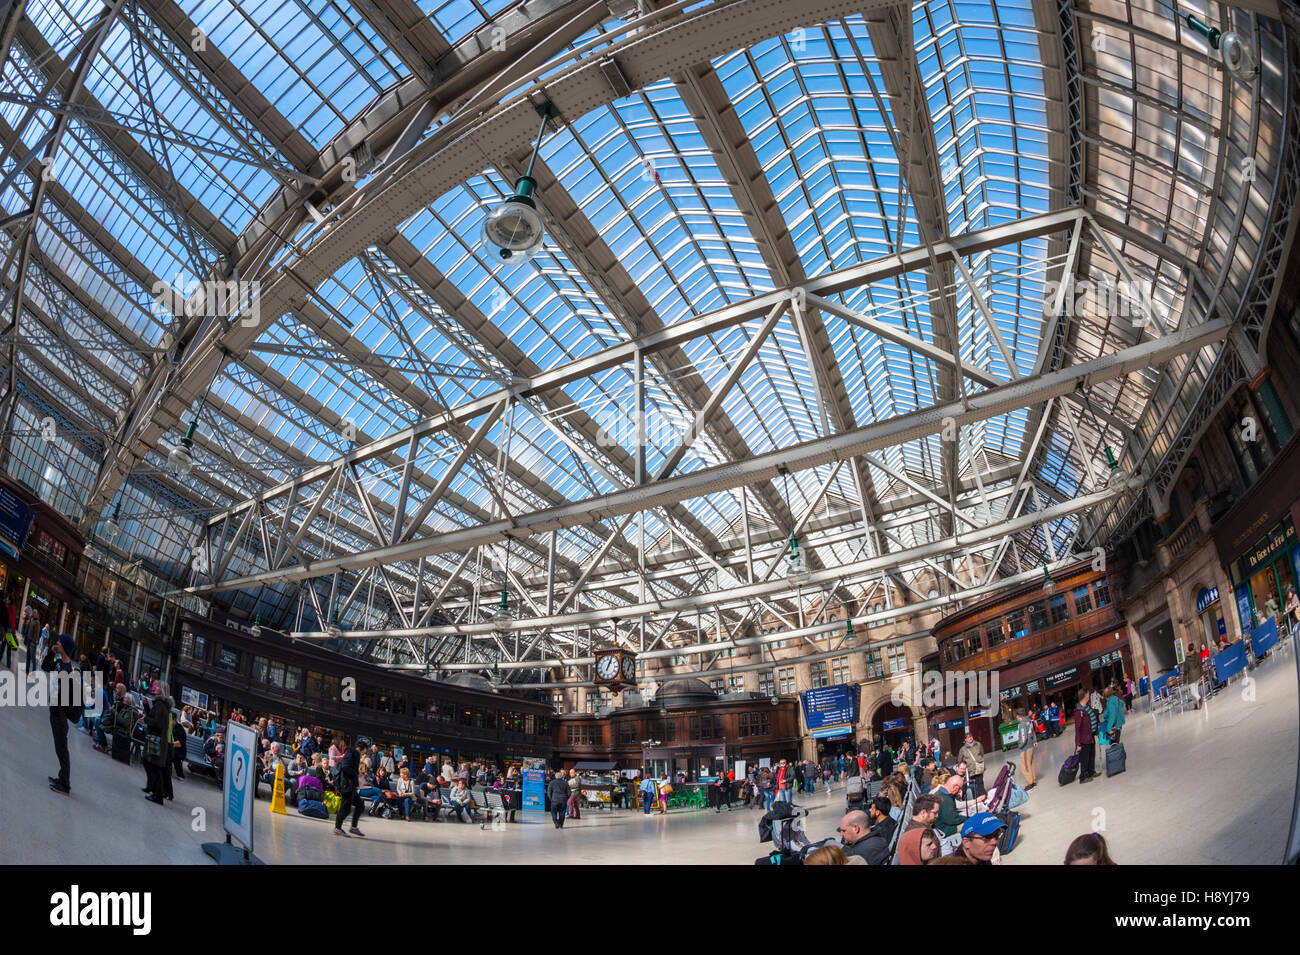 Looking up at the glass roof of Glasgow central station - Stock Image